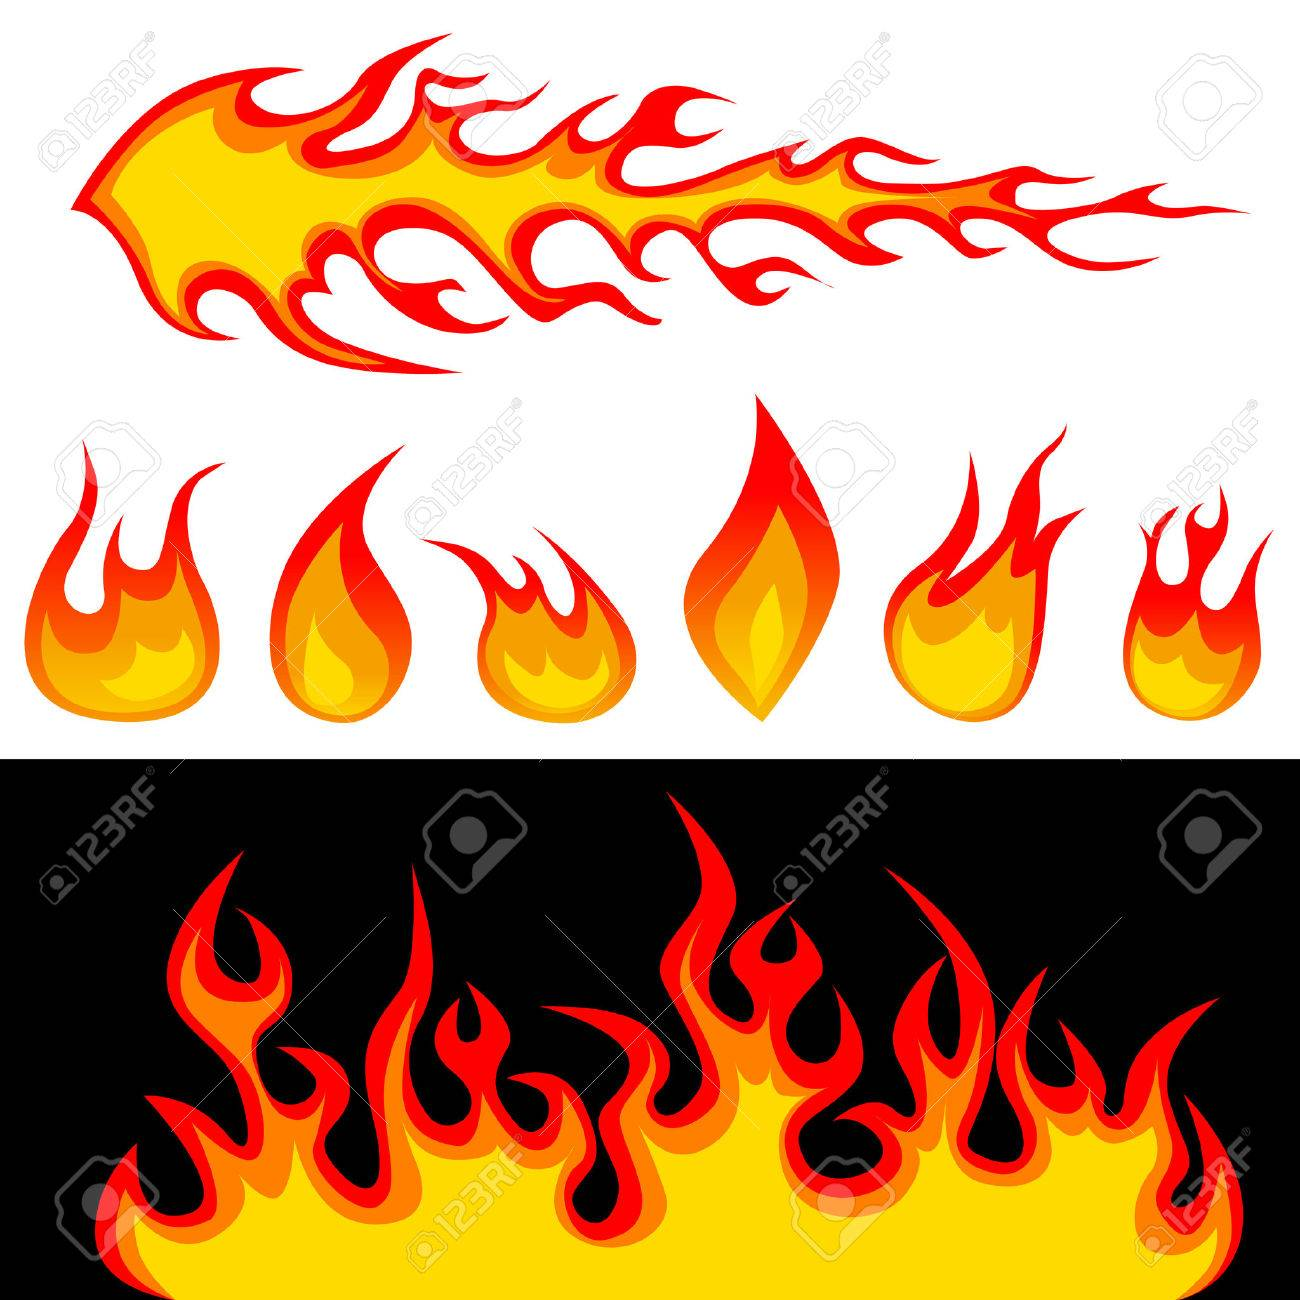 Fire Graphic Elements Royalty Free Cliparts, Vectors, And Stock ...